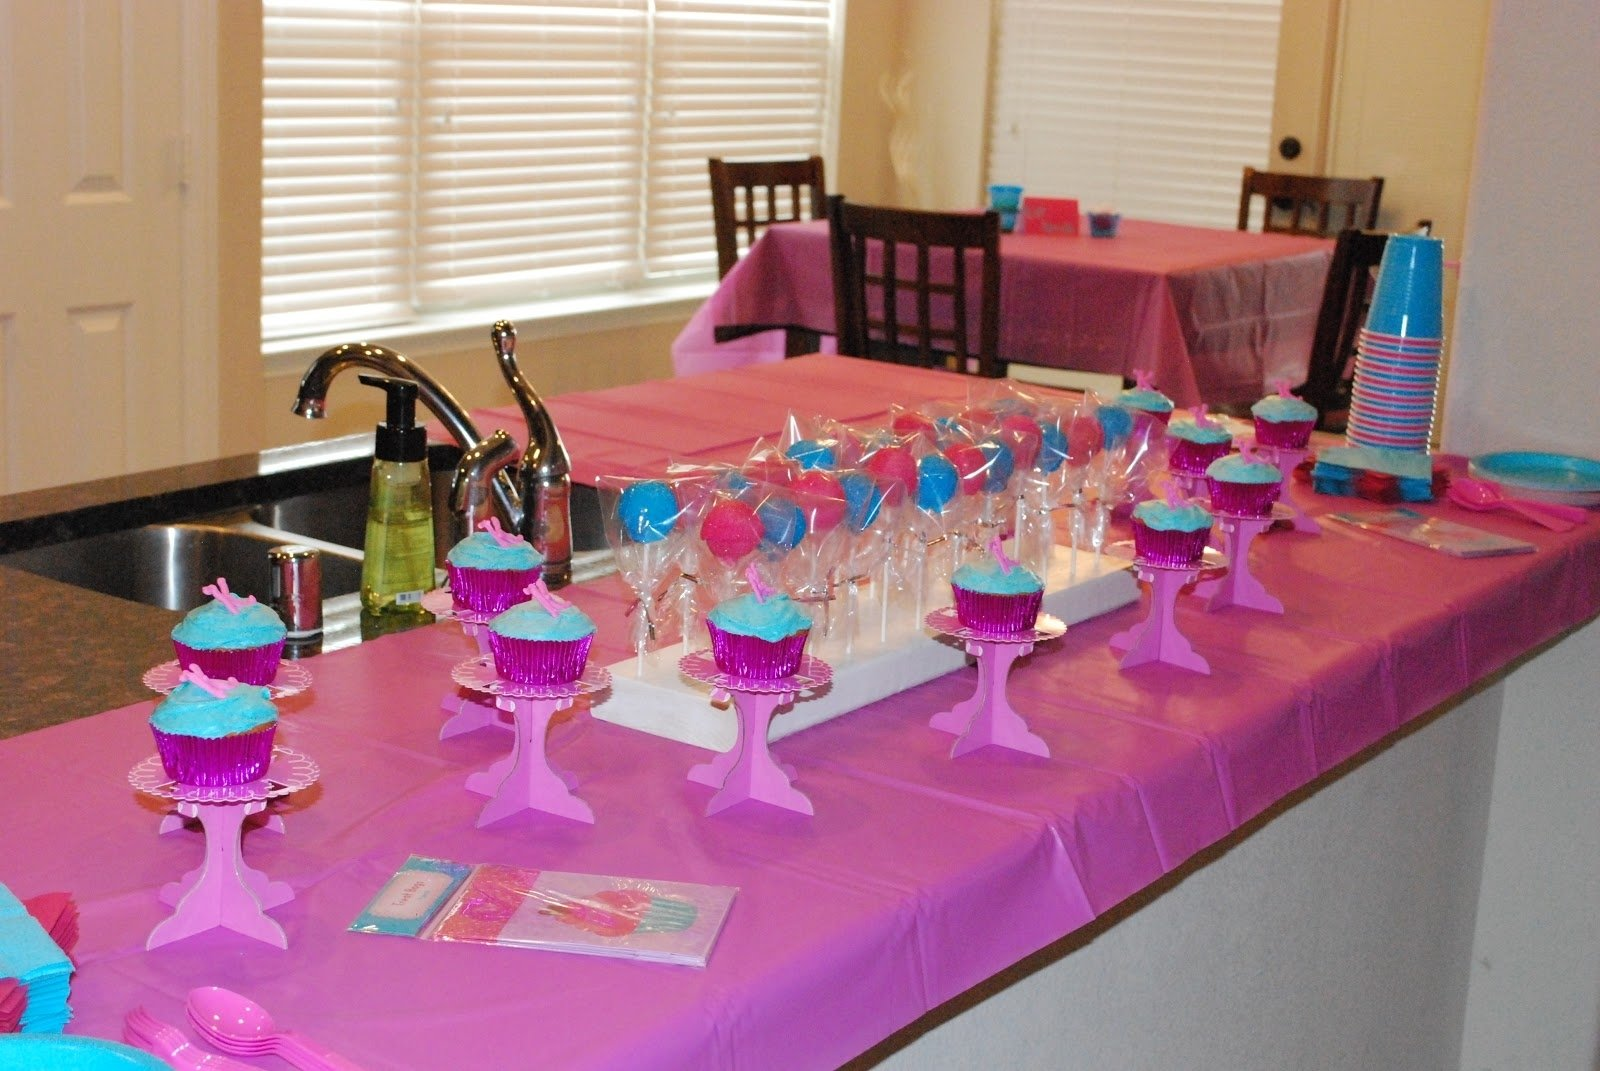 10 Best 11 Year Old Girl Birthday Party Ideas birthday ideas for 11 year girl image inspiration of cake and 2020